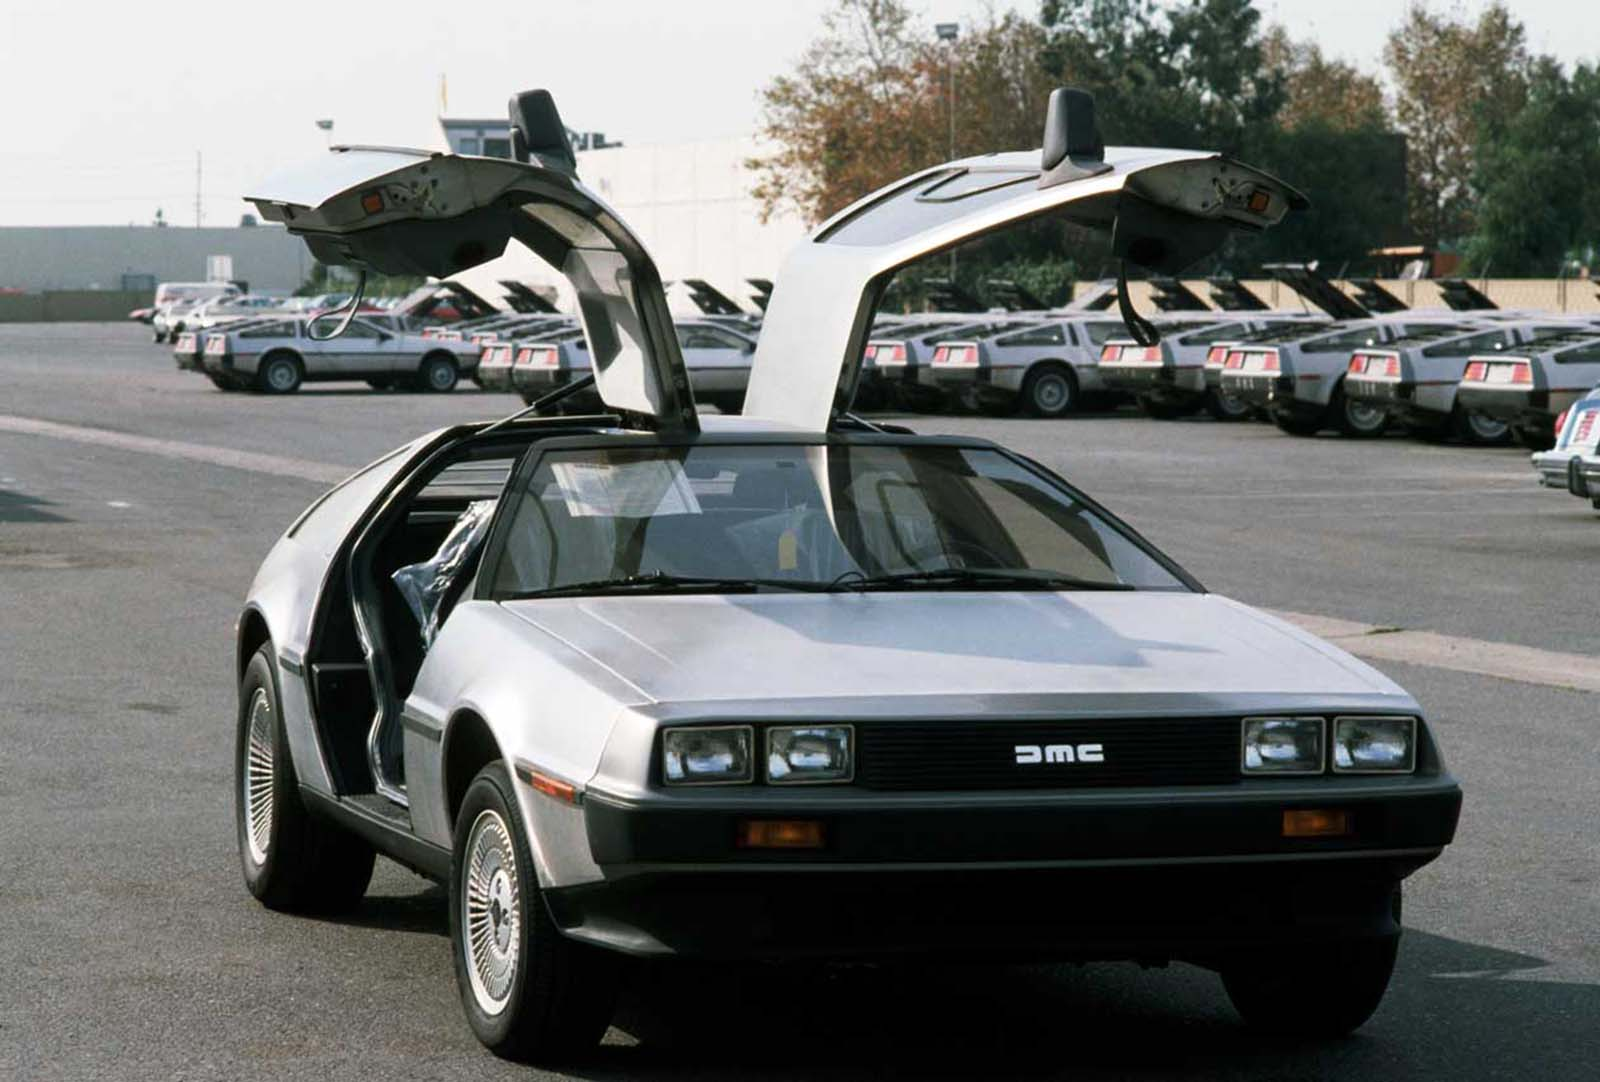 A DeLorean with doors open. 1981.